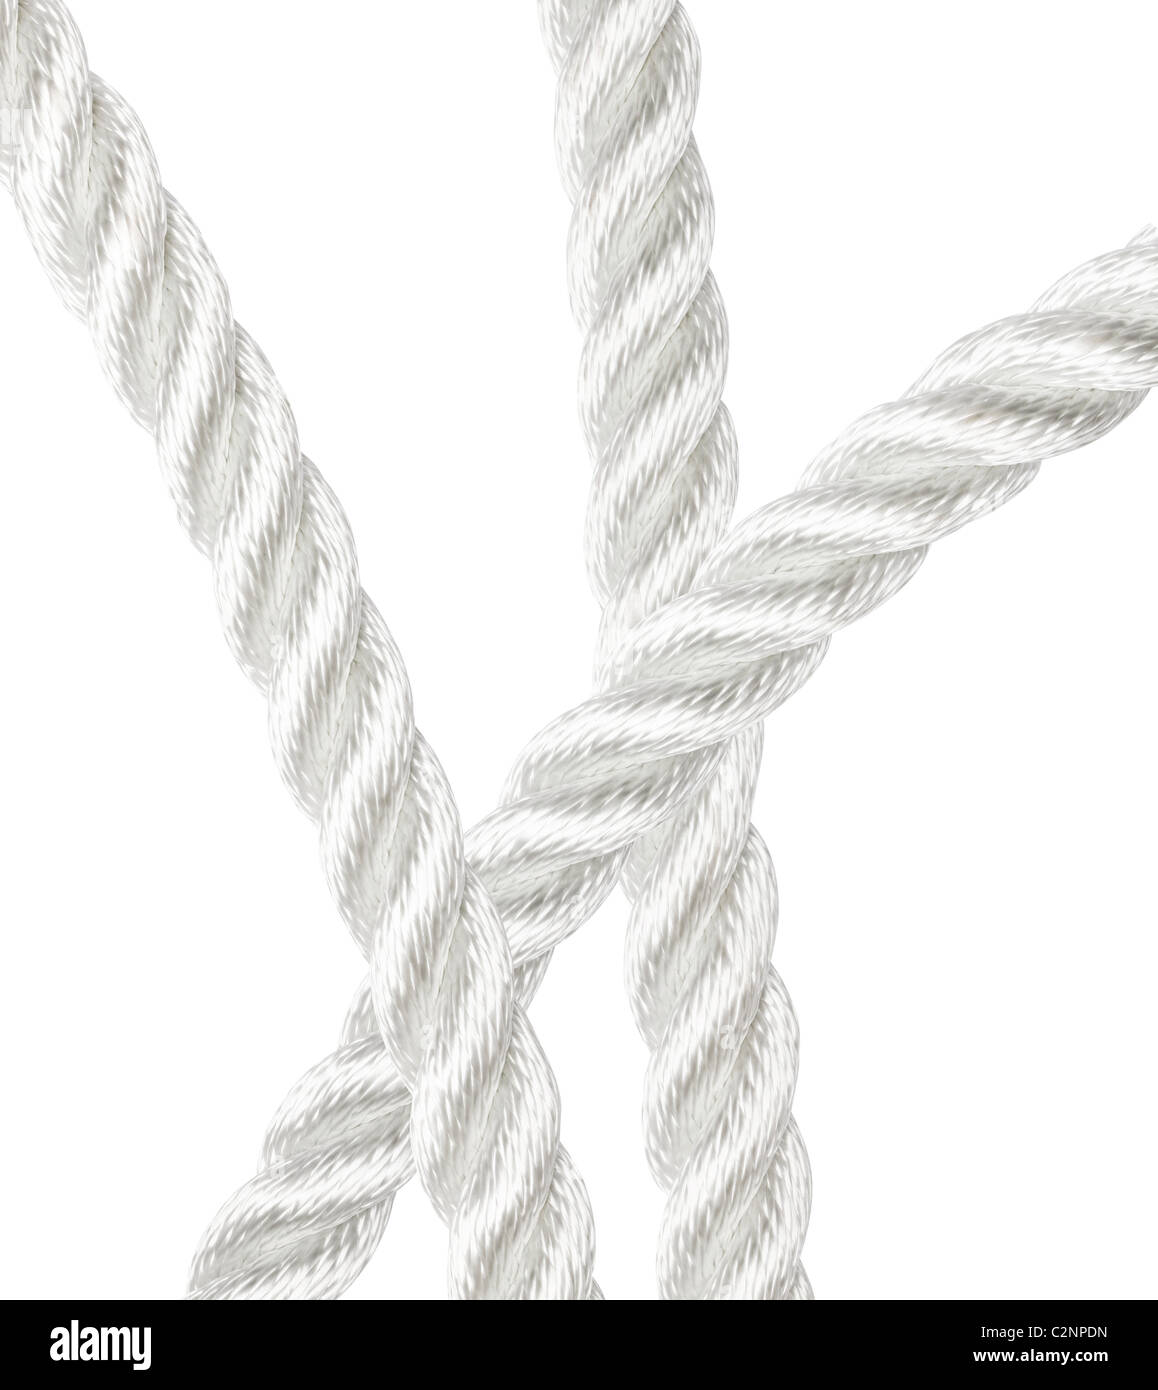 Strong nylon rope overlapping isolated on white - Stock Image